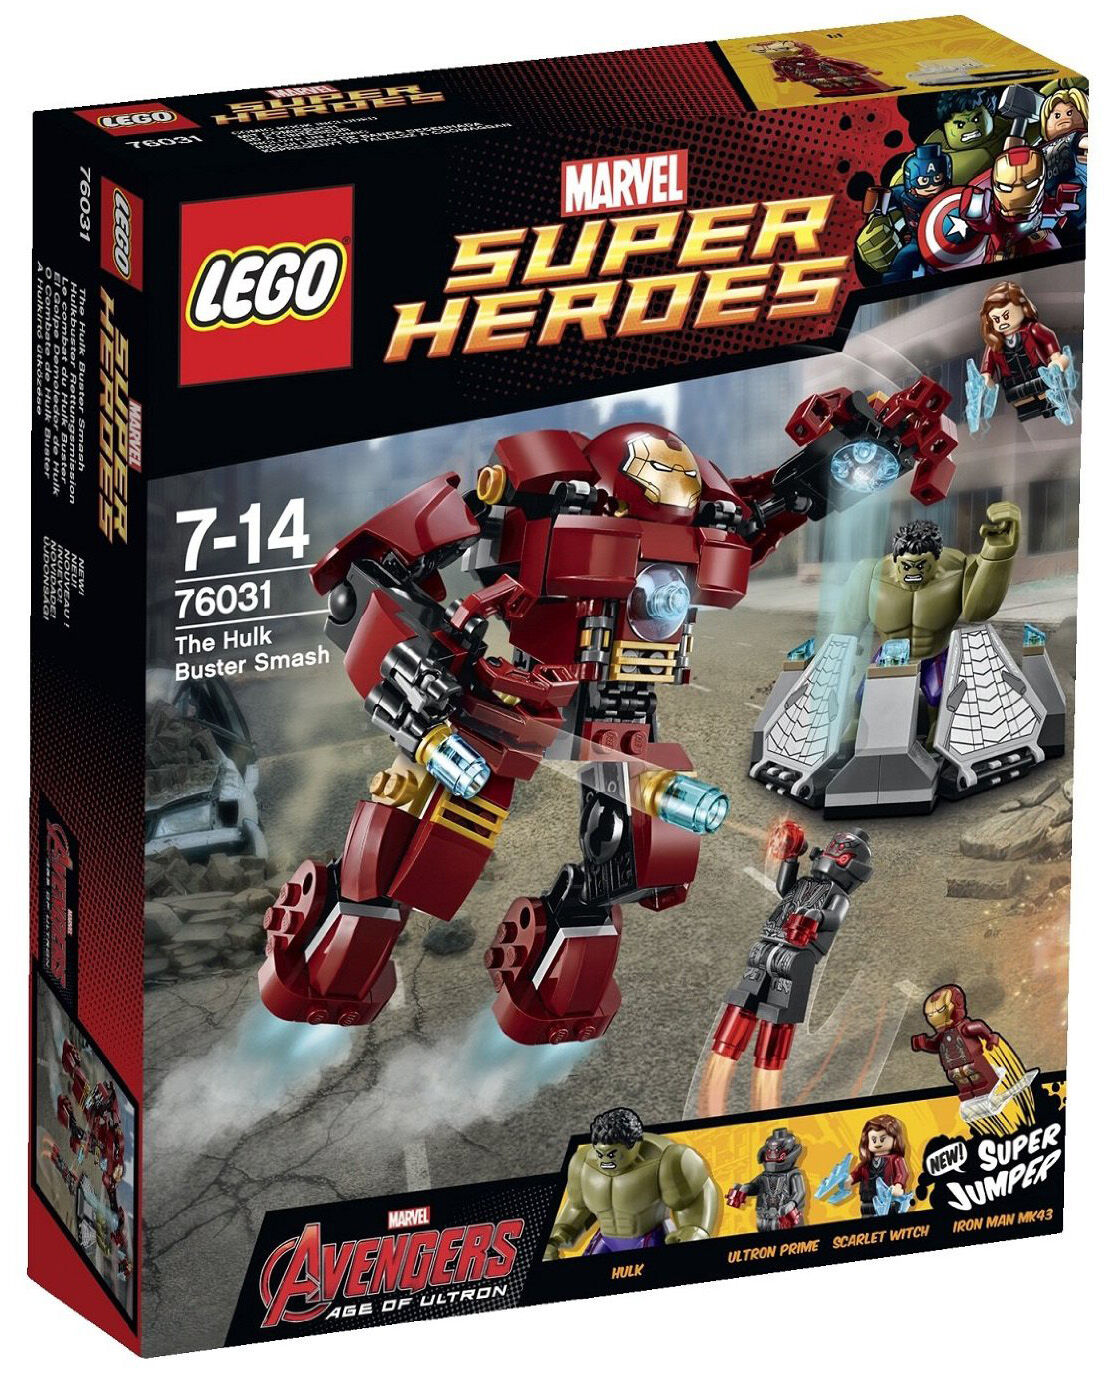 LEGO Super Heroes Marvel Infinity War War War The Hulk Buster Smash - 76031 Sealed 1f2bf3